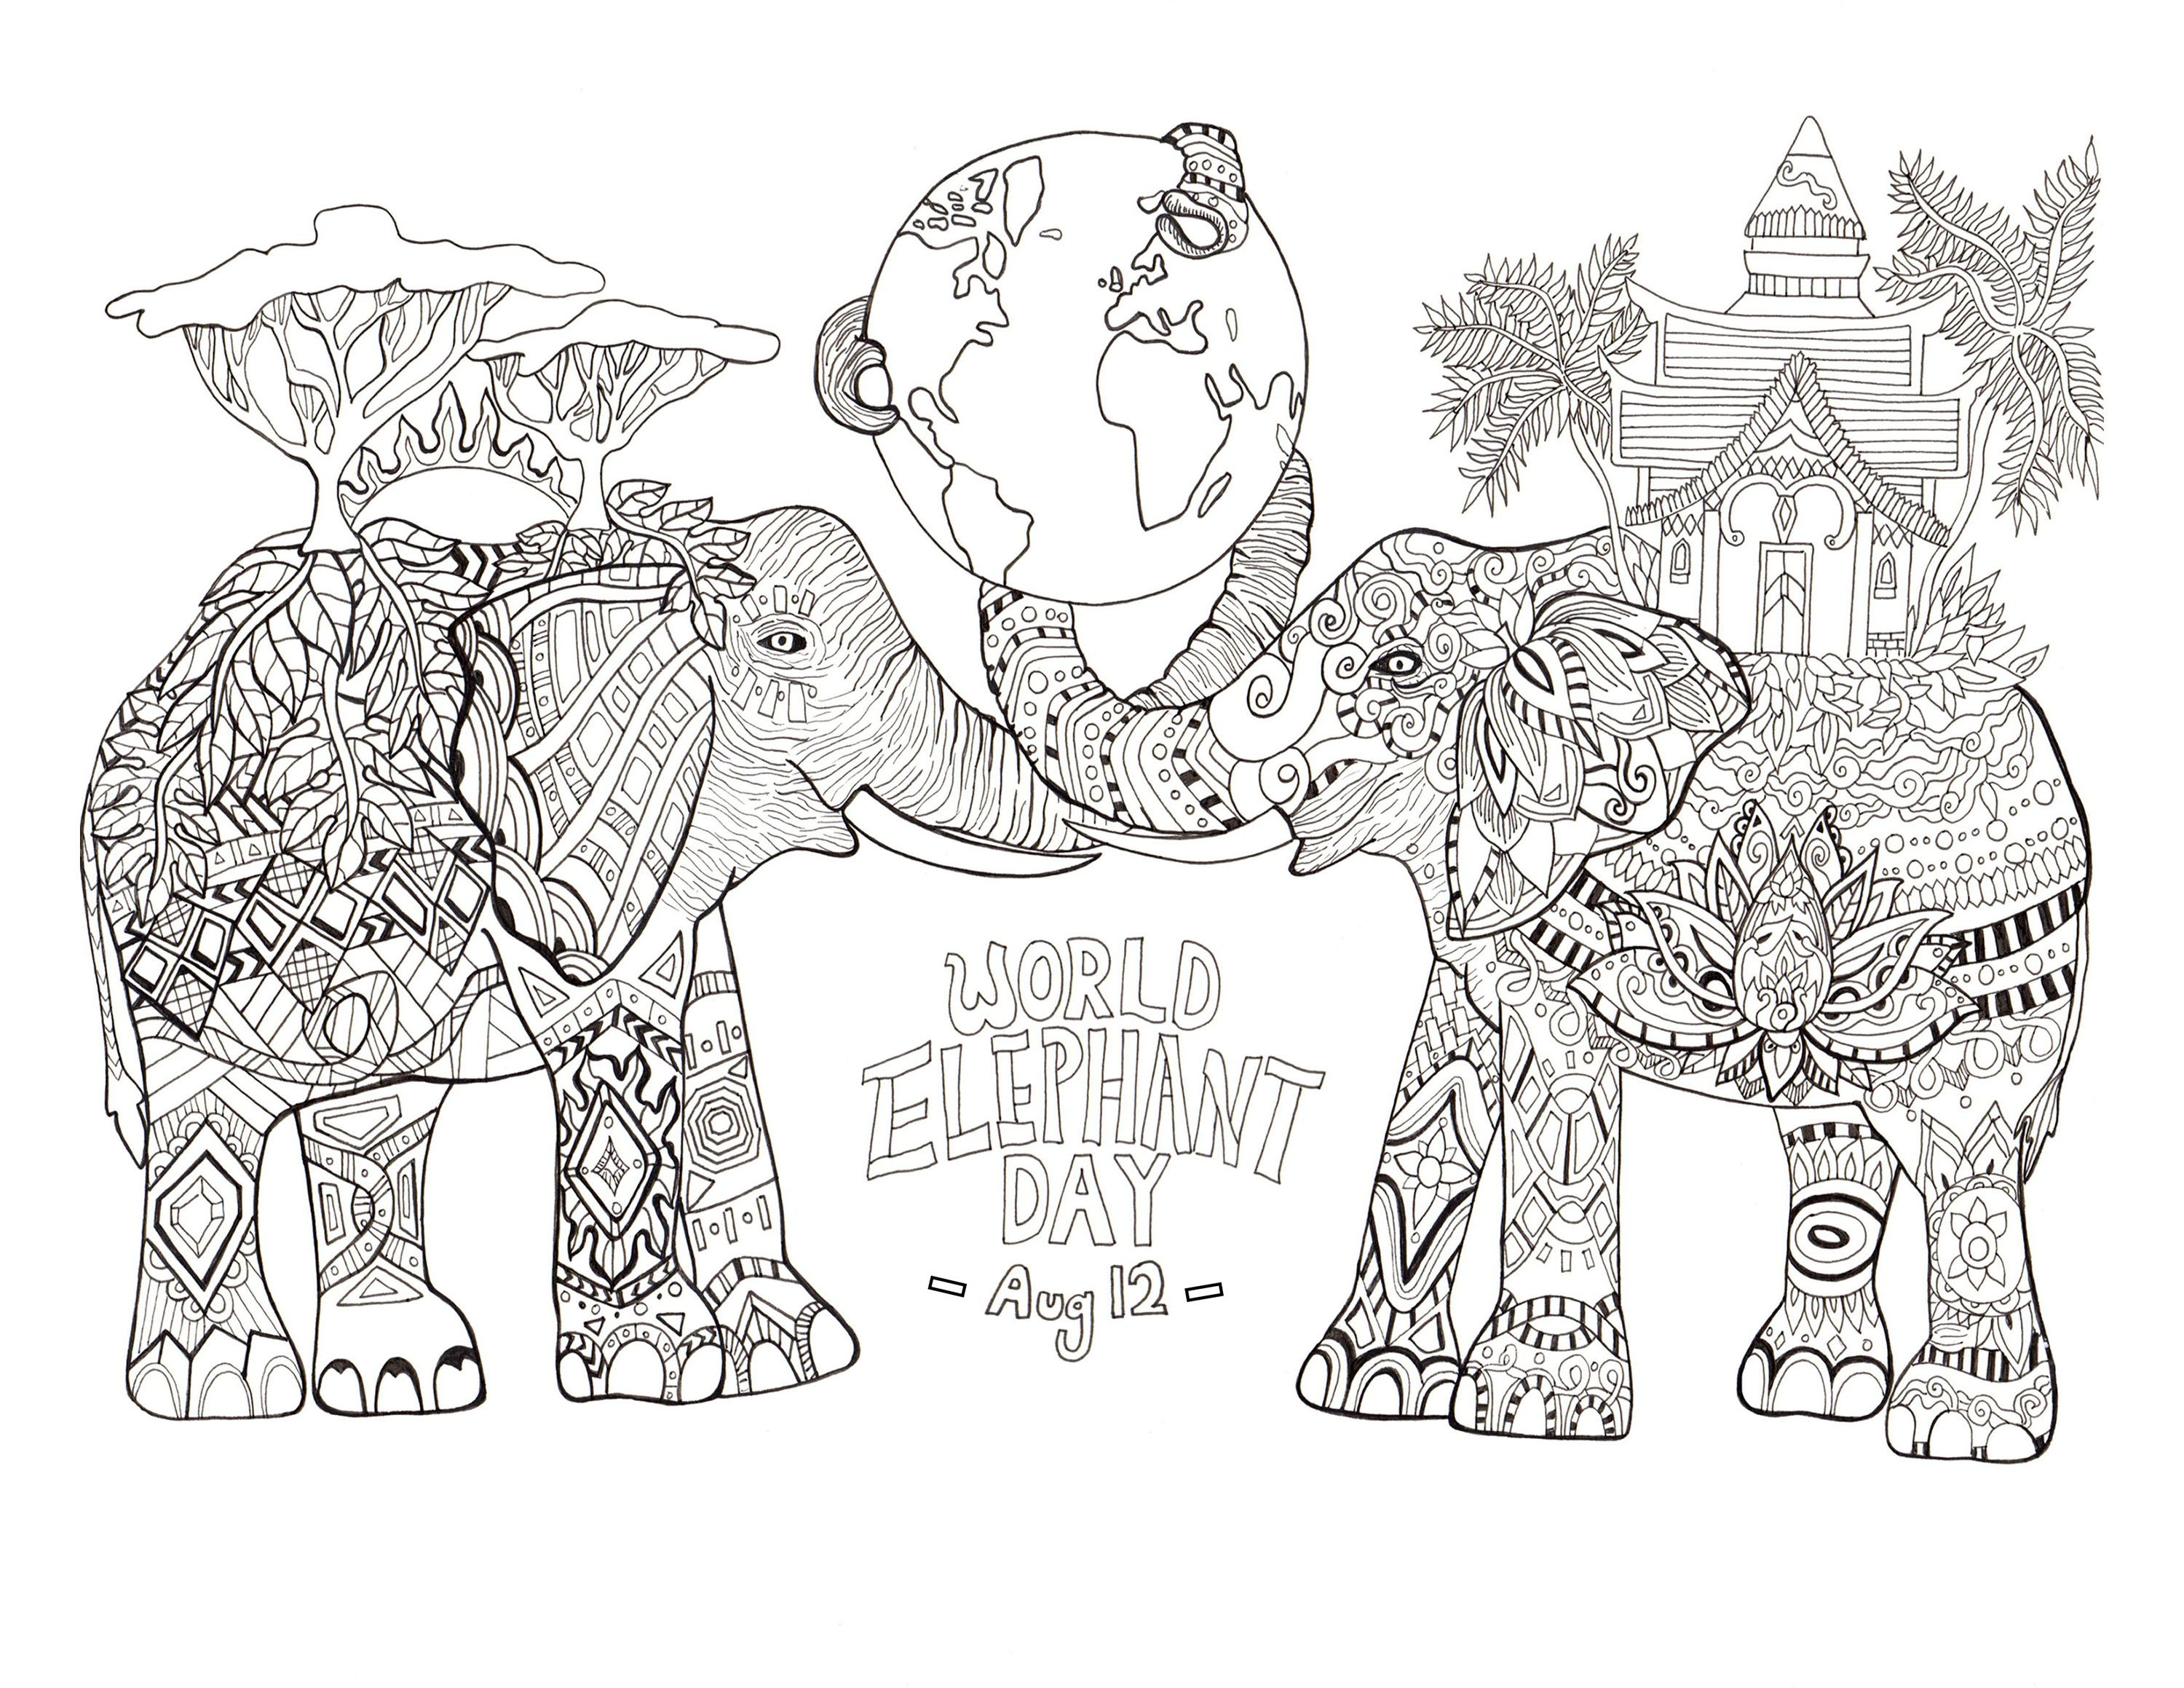 Coloring page drawn by rylee postulo for the world elephant day aug